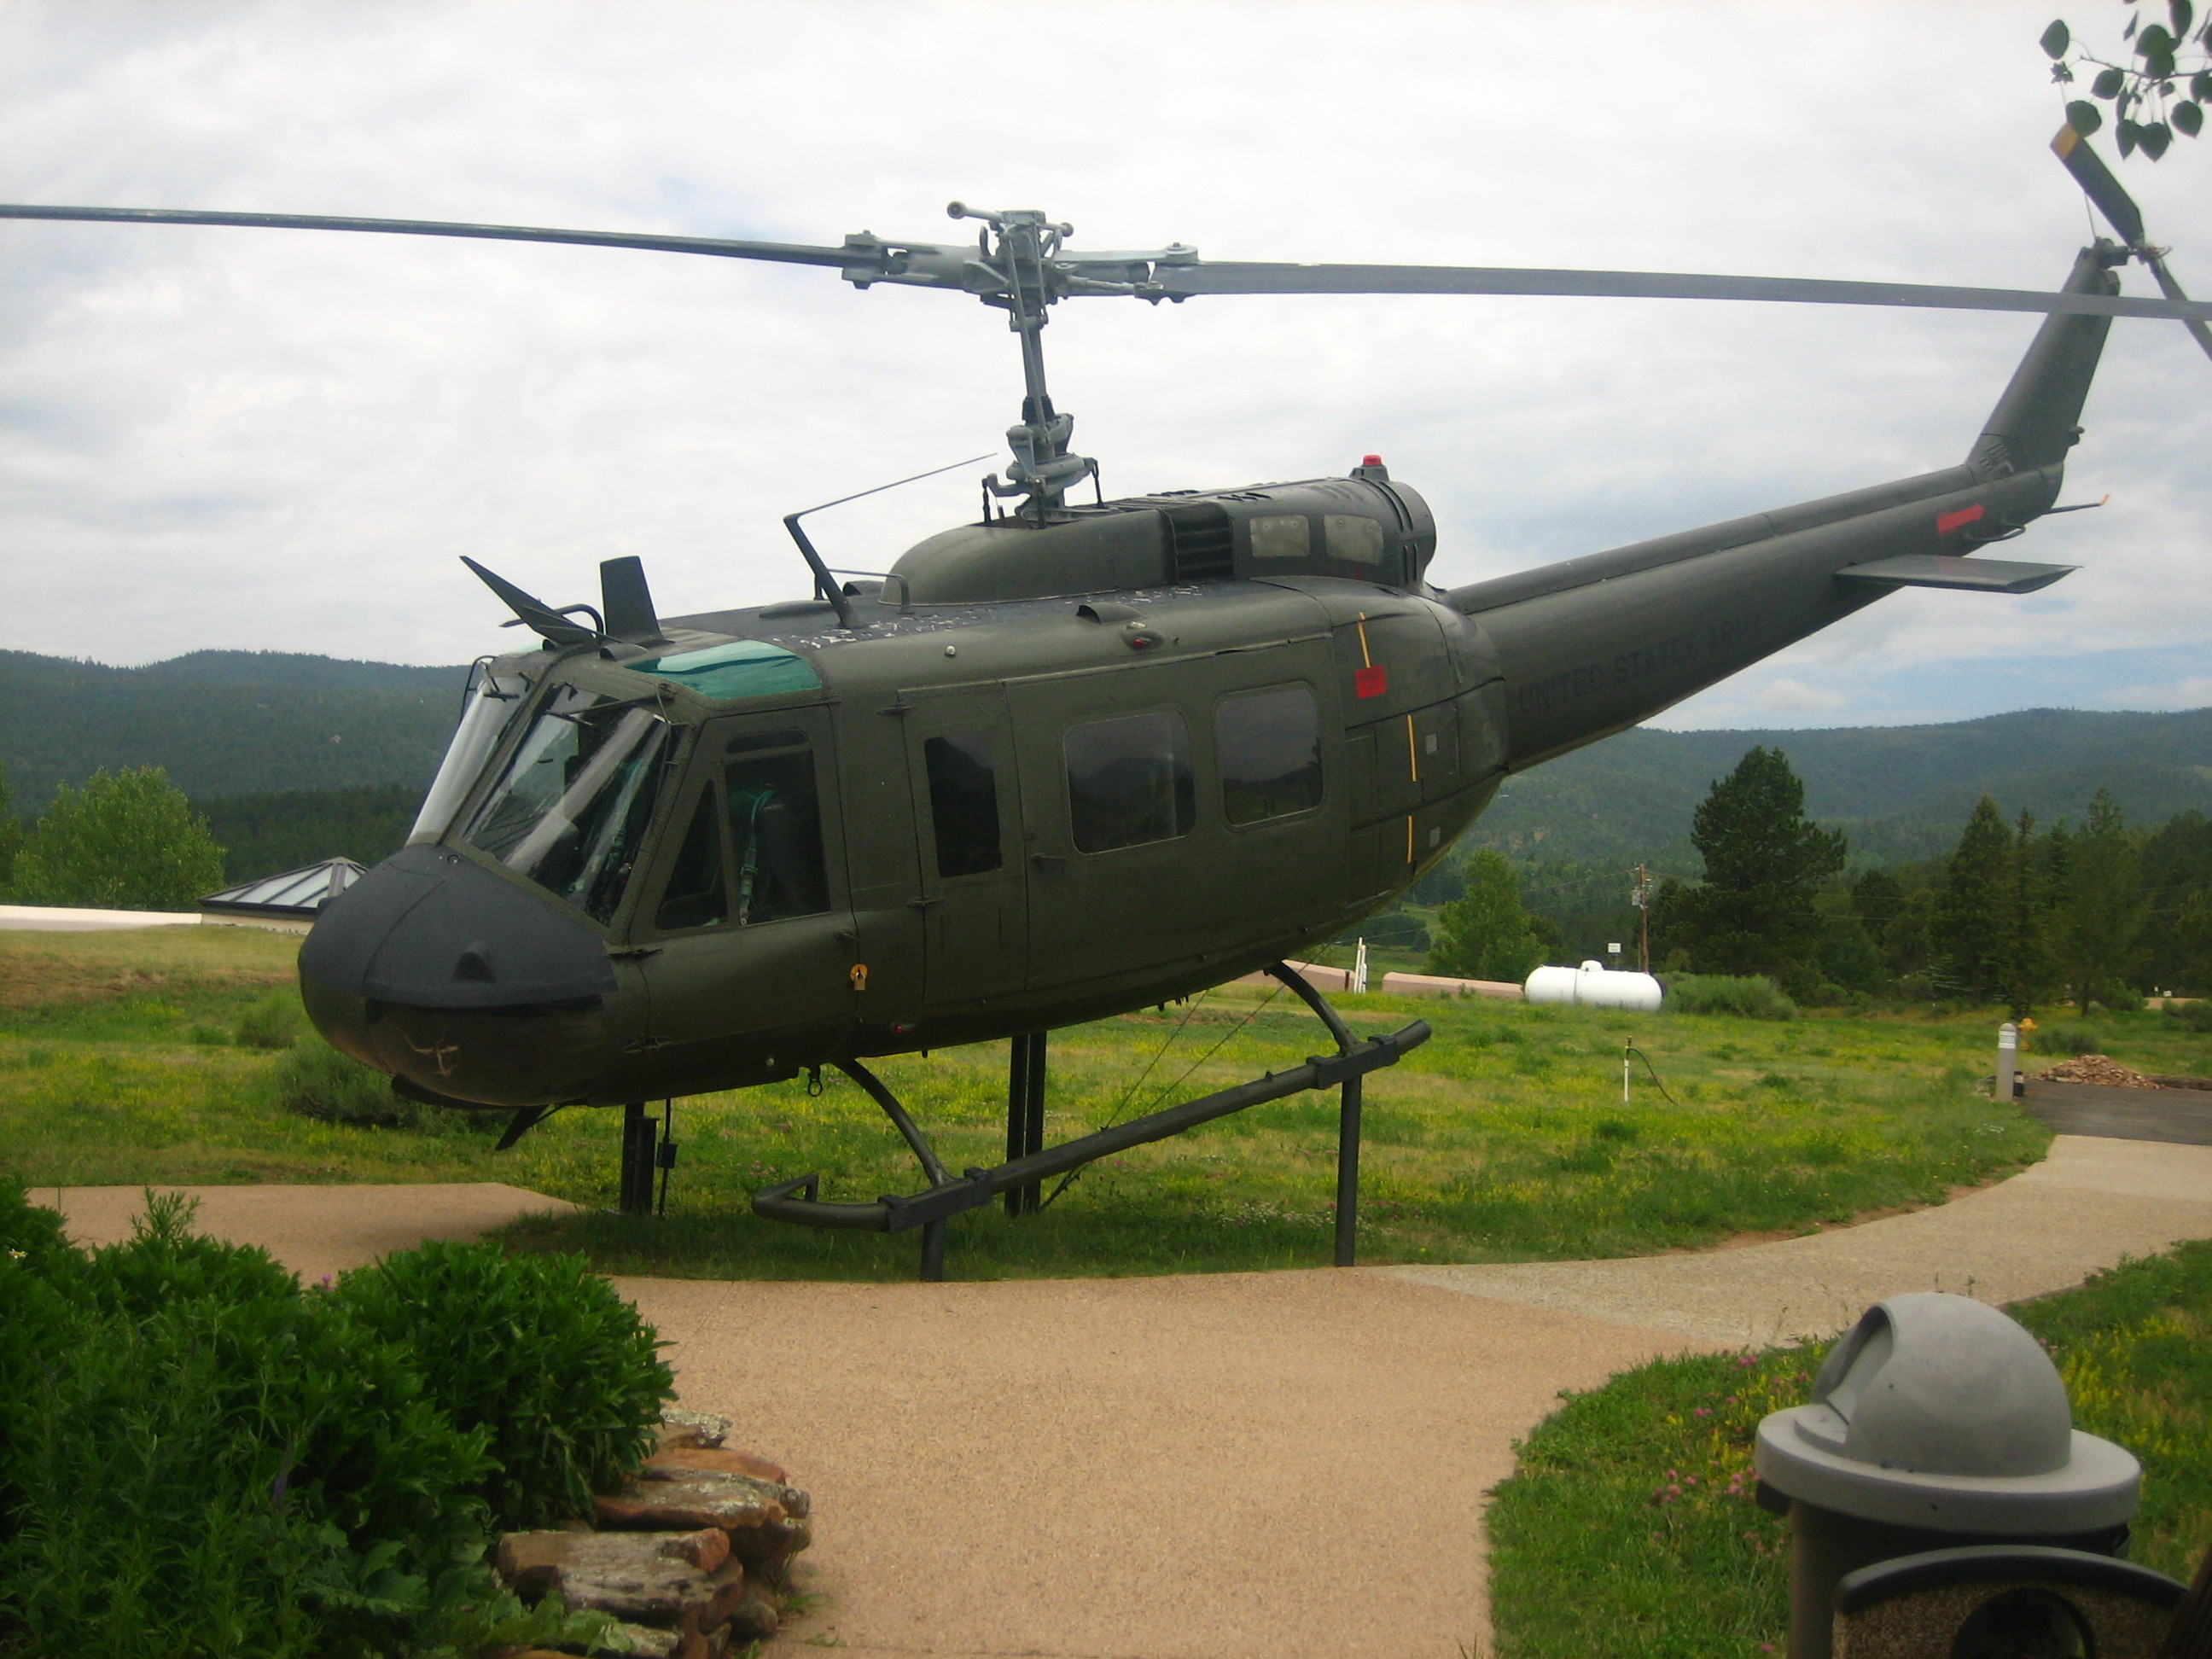 Res: 2592x1944, File:Huey helicopter IMG 0435.JPG